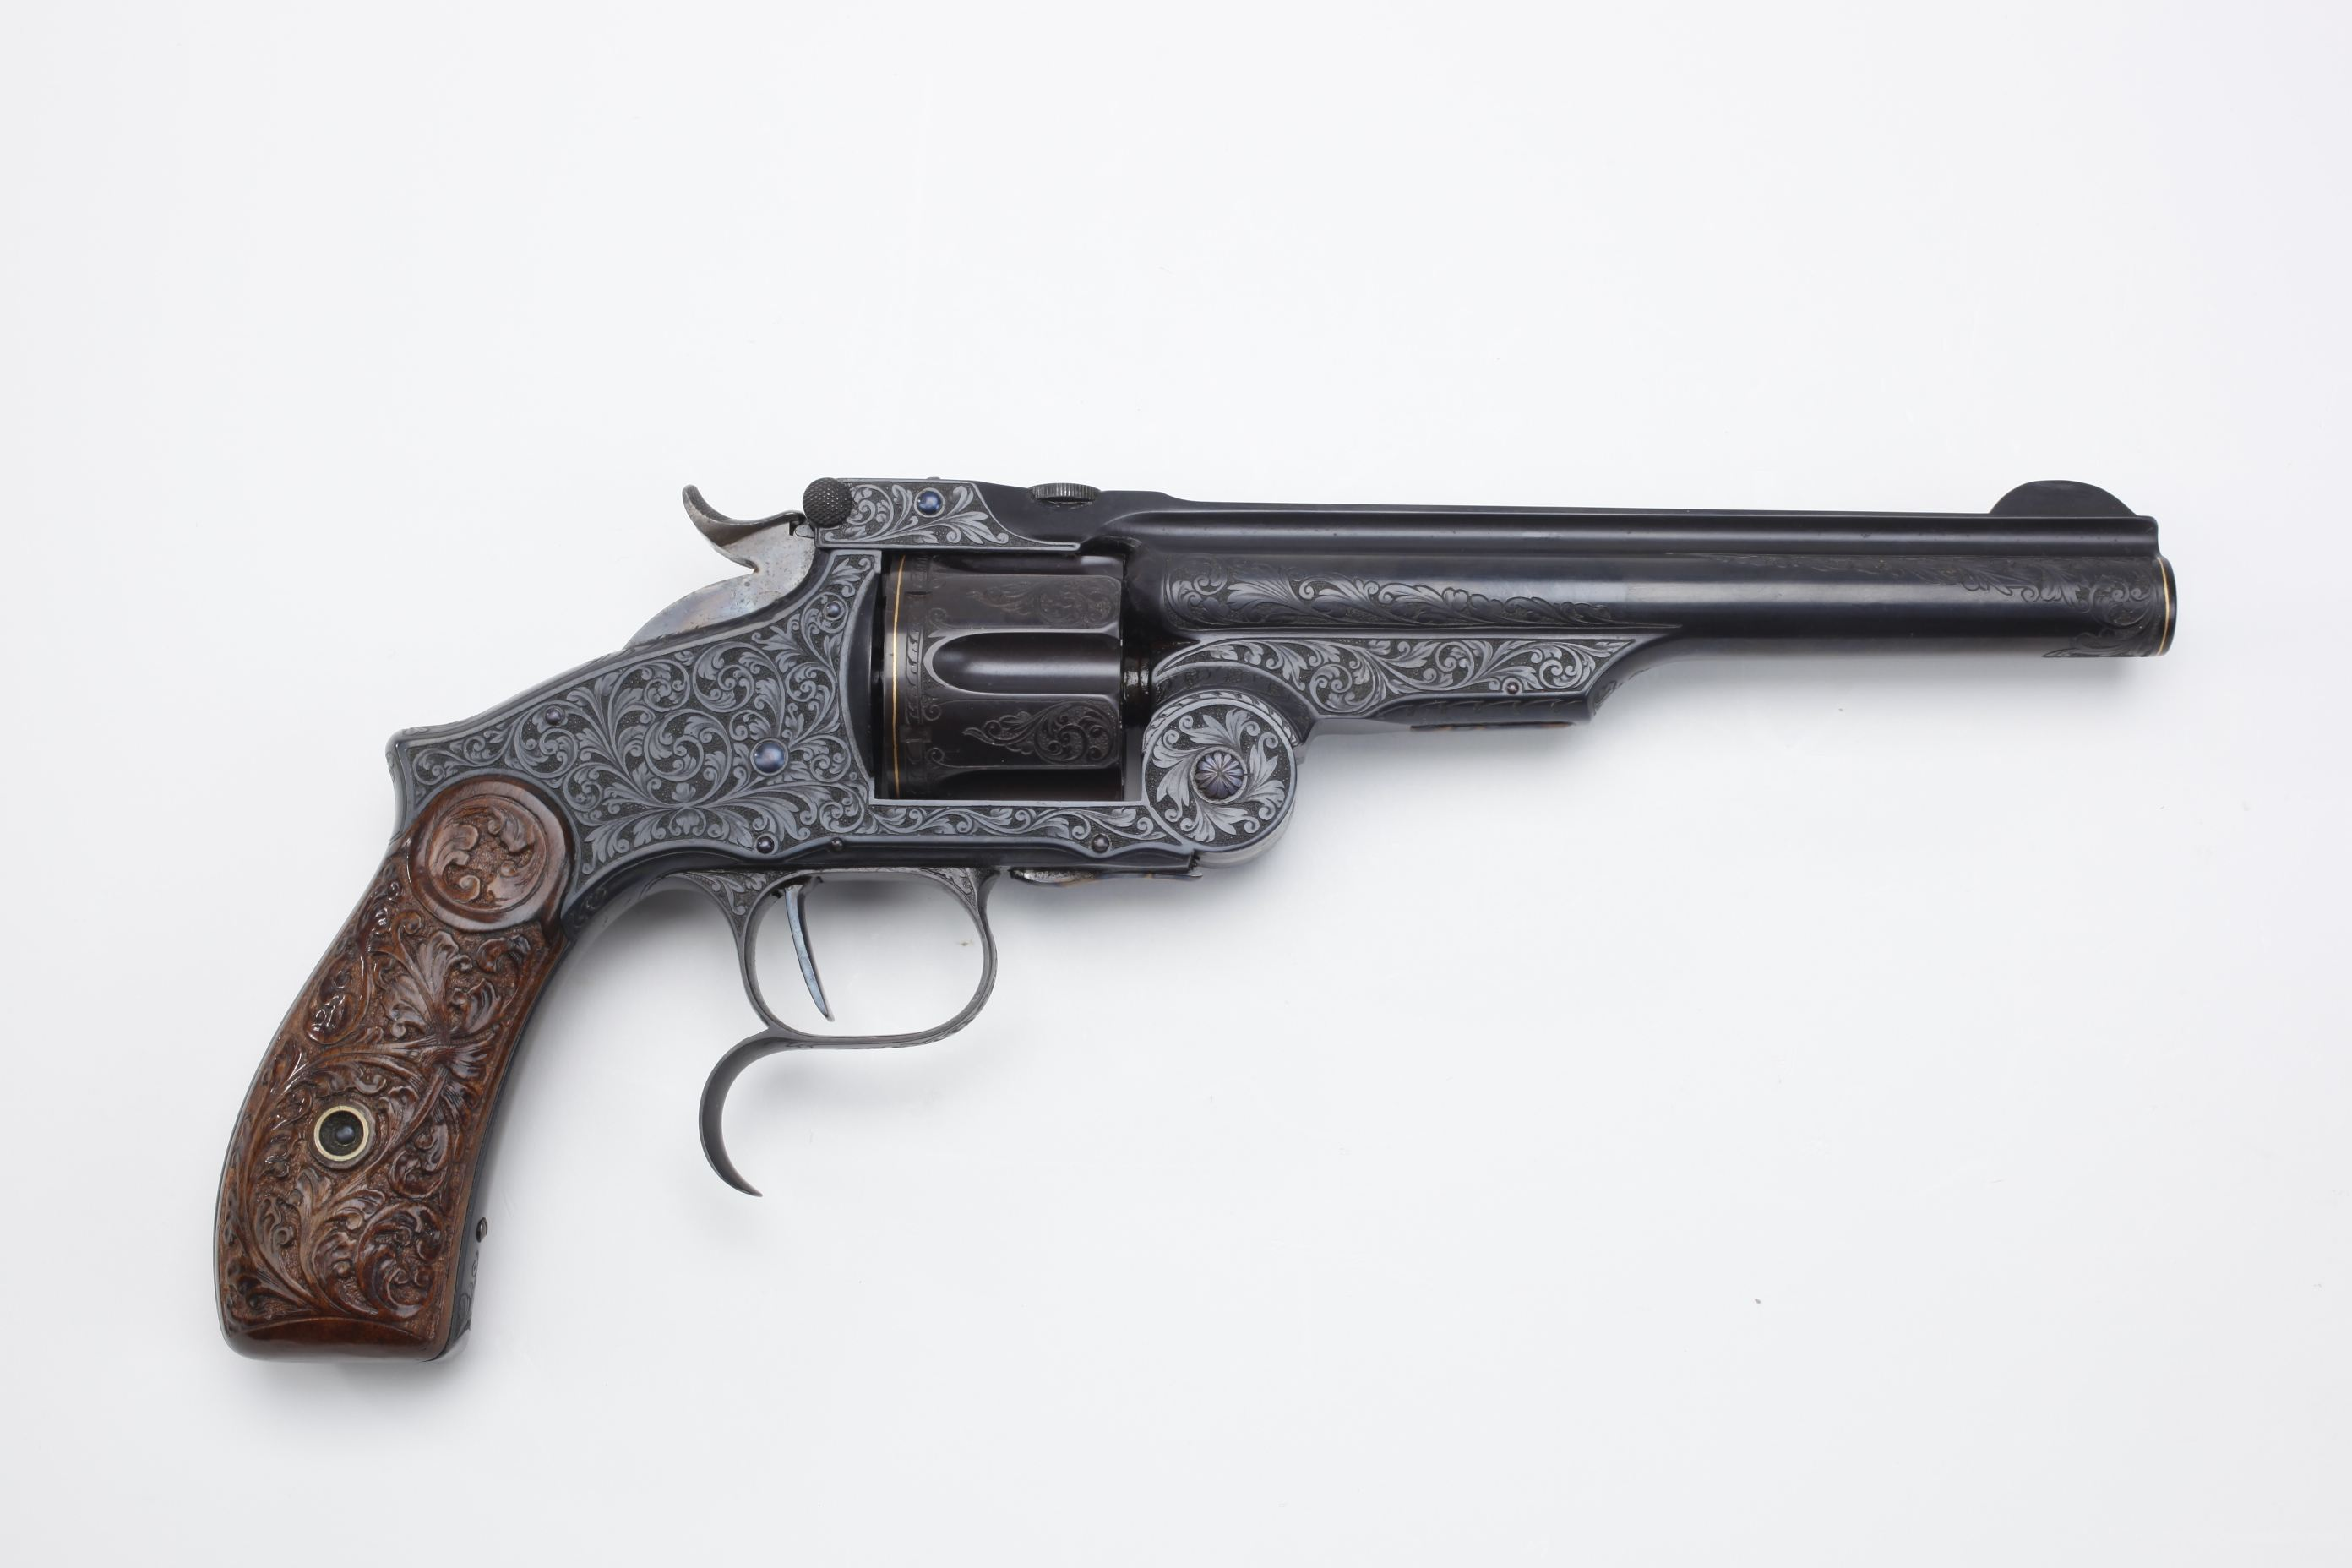 Smith and Wesson Model 3 Russian revolver